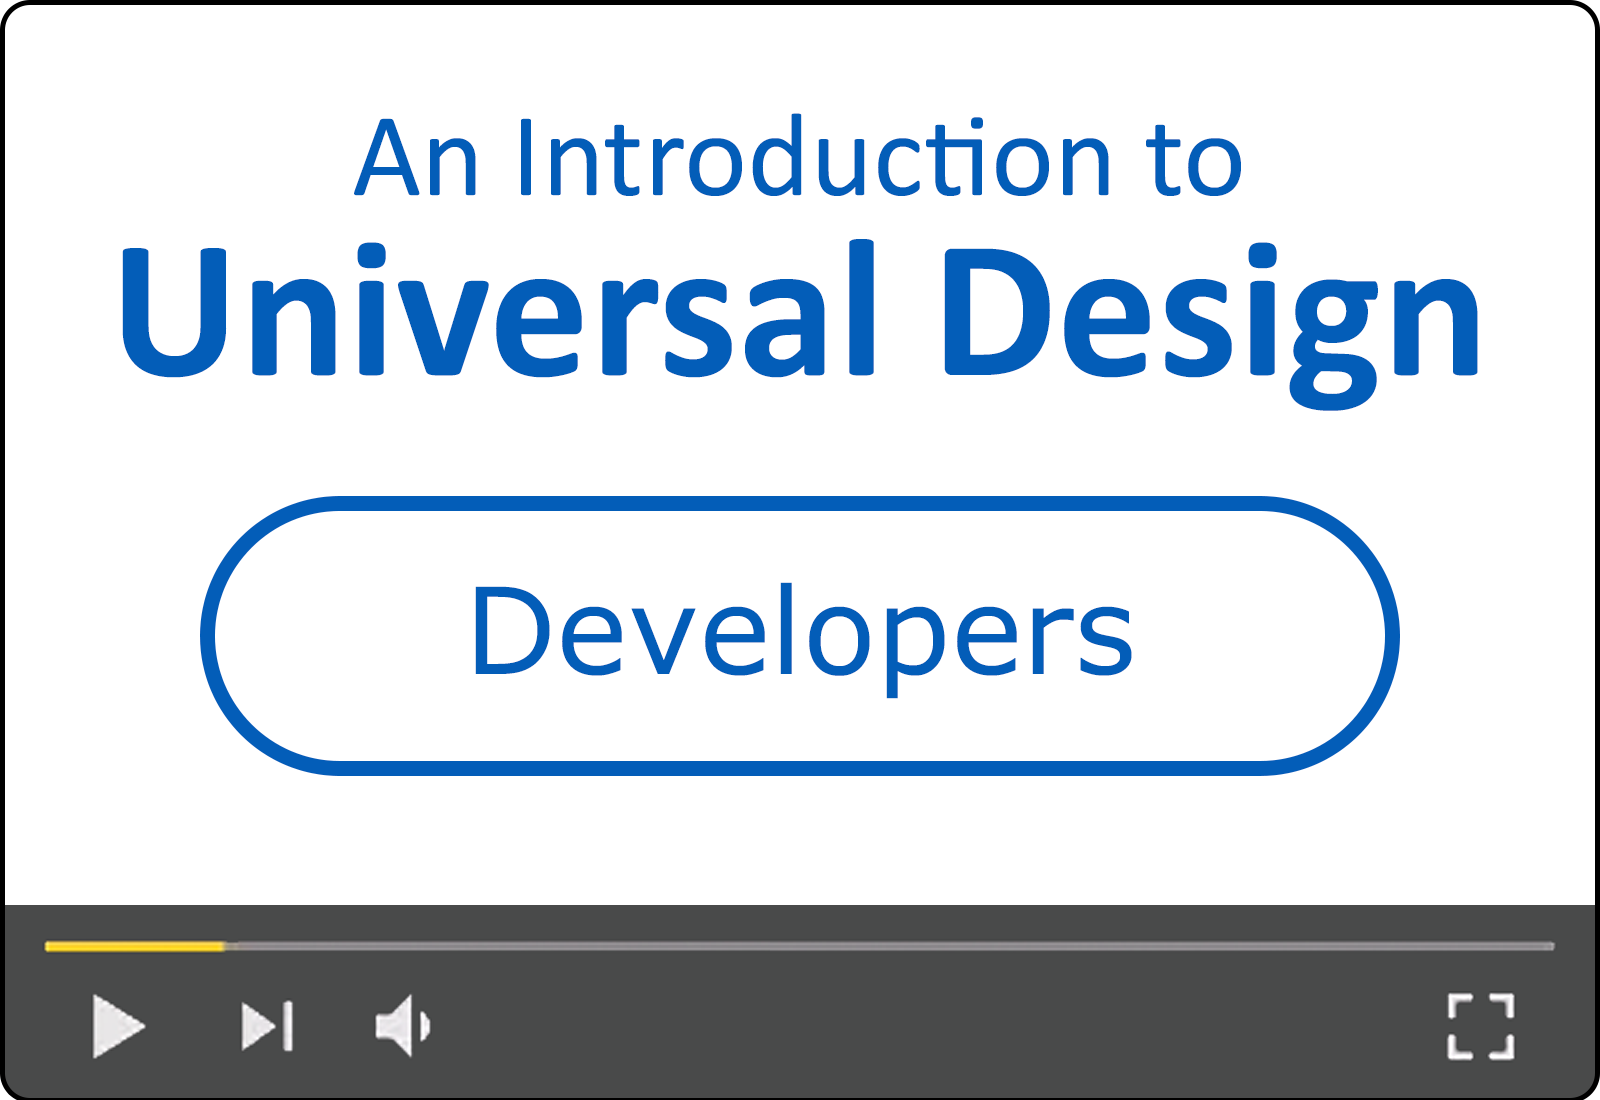 An Introduction to Universal Design for Developers